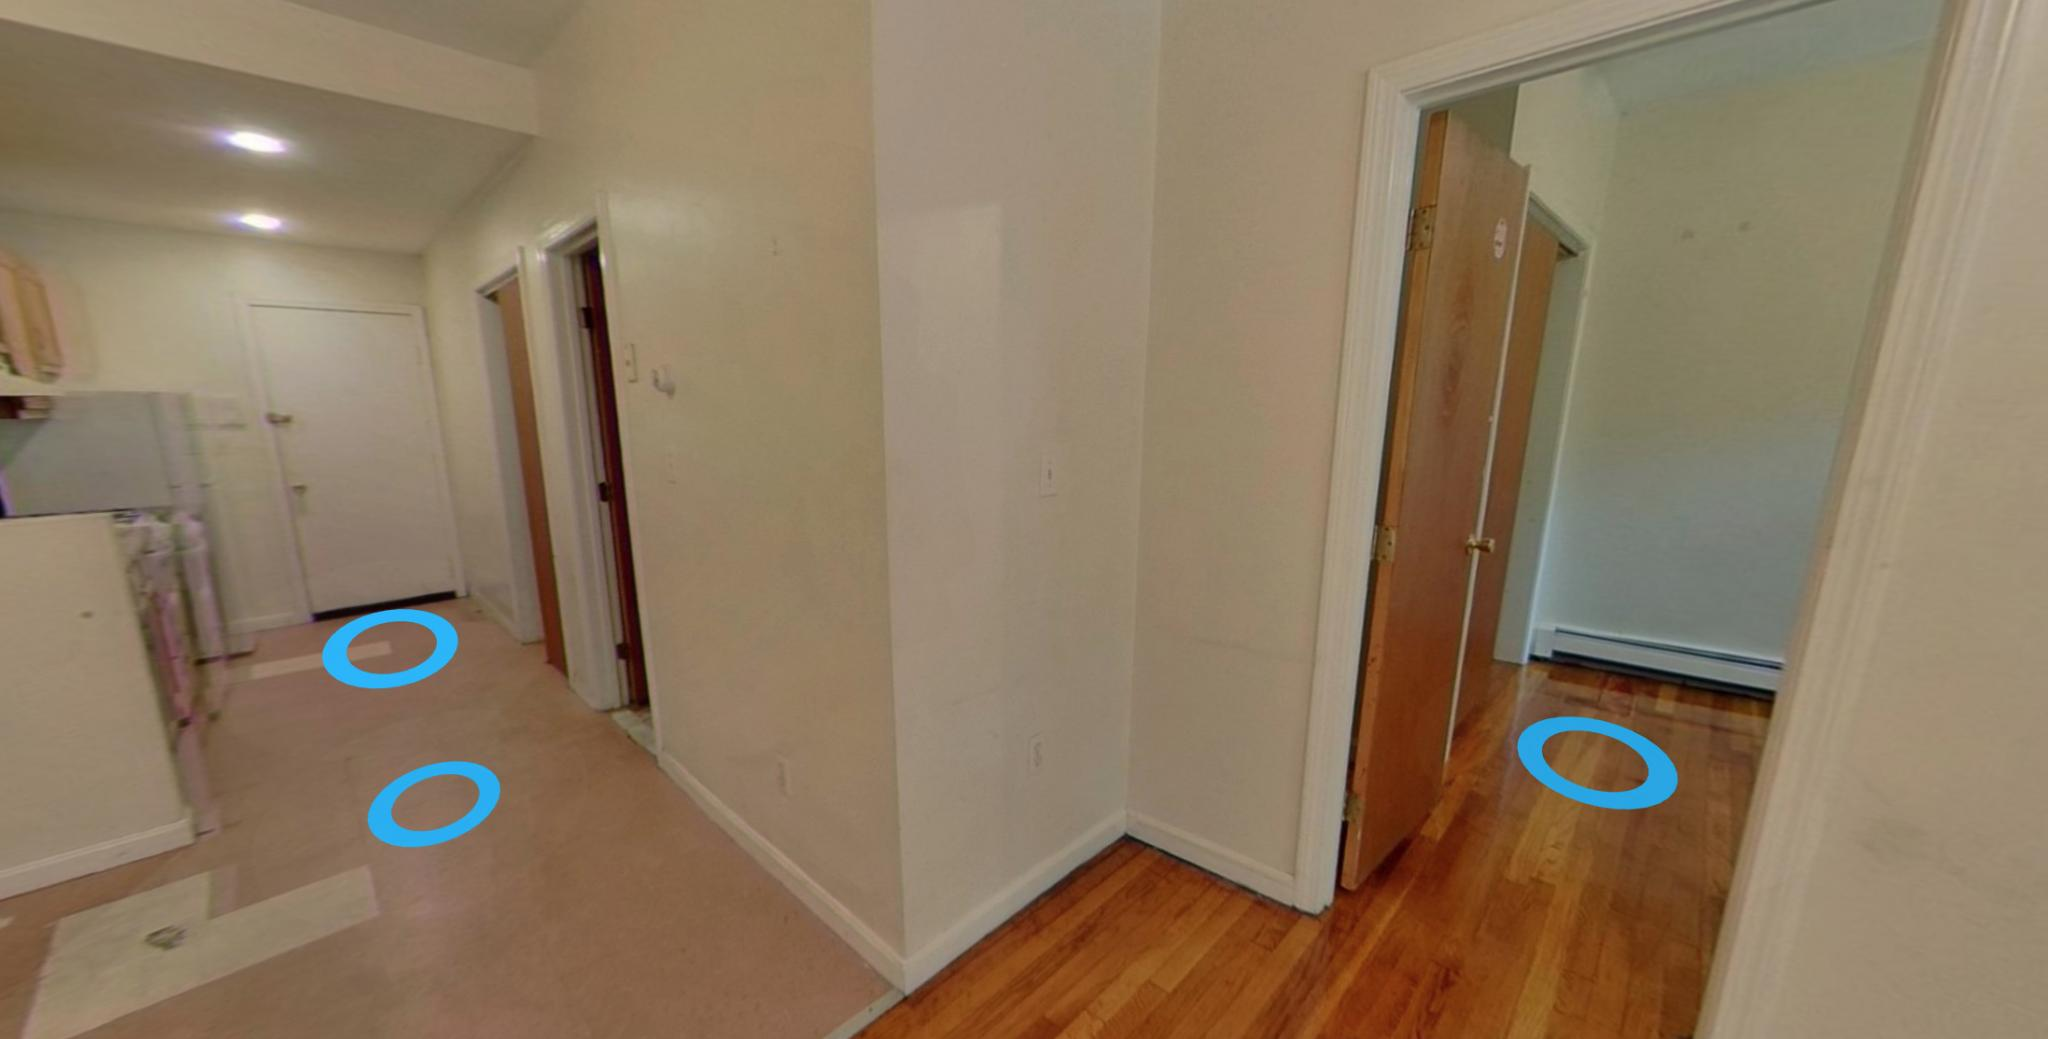 2 ROOMS TO RENT SHORT TERM !! 800 A BEDROOM PARKER ST